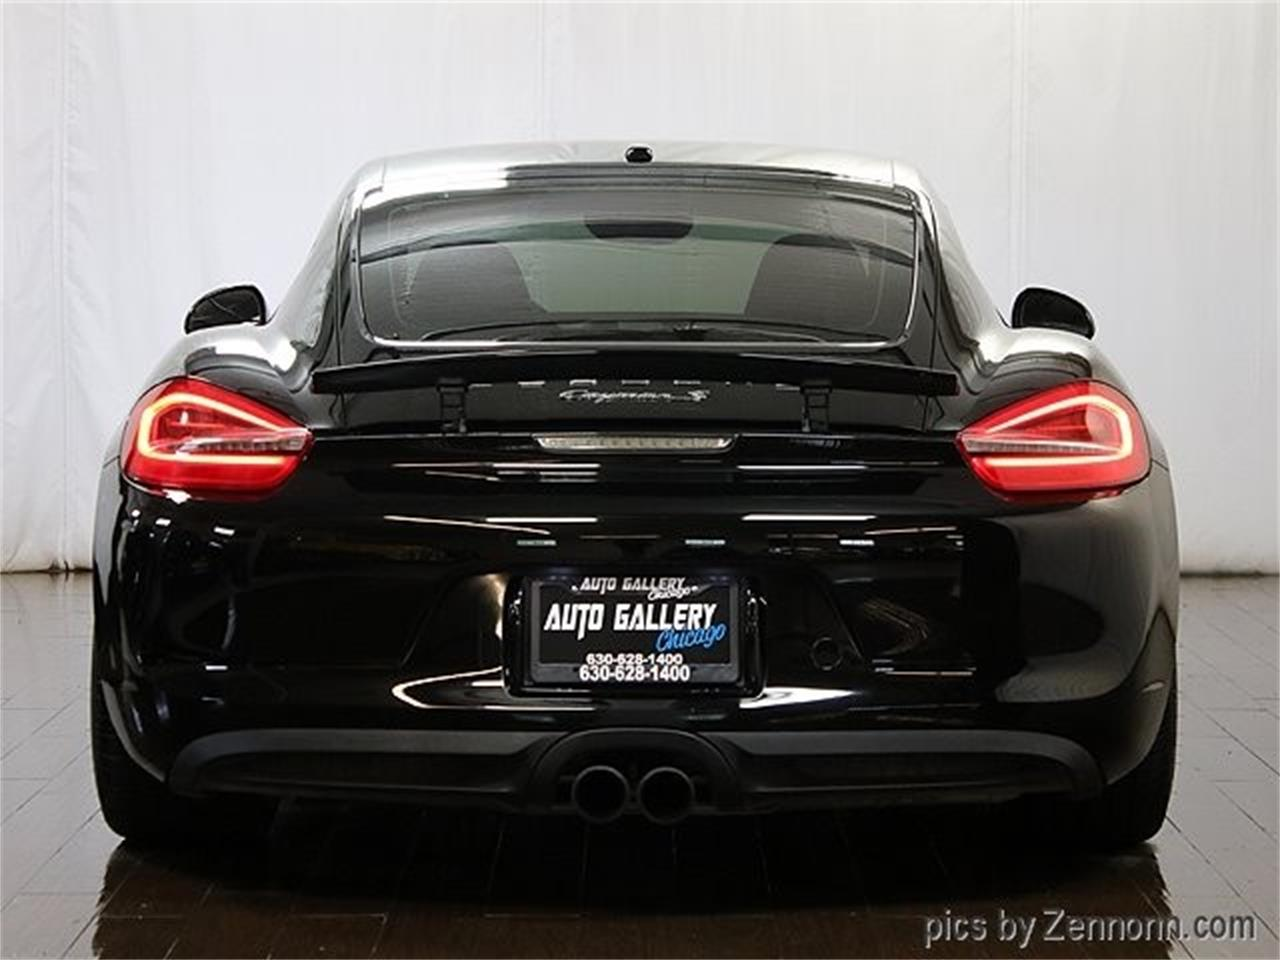 2014 Porsche Cayman (CC-1223661) for sale in Addison, Illinois